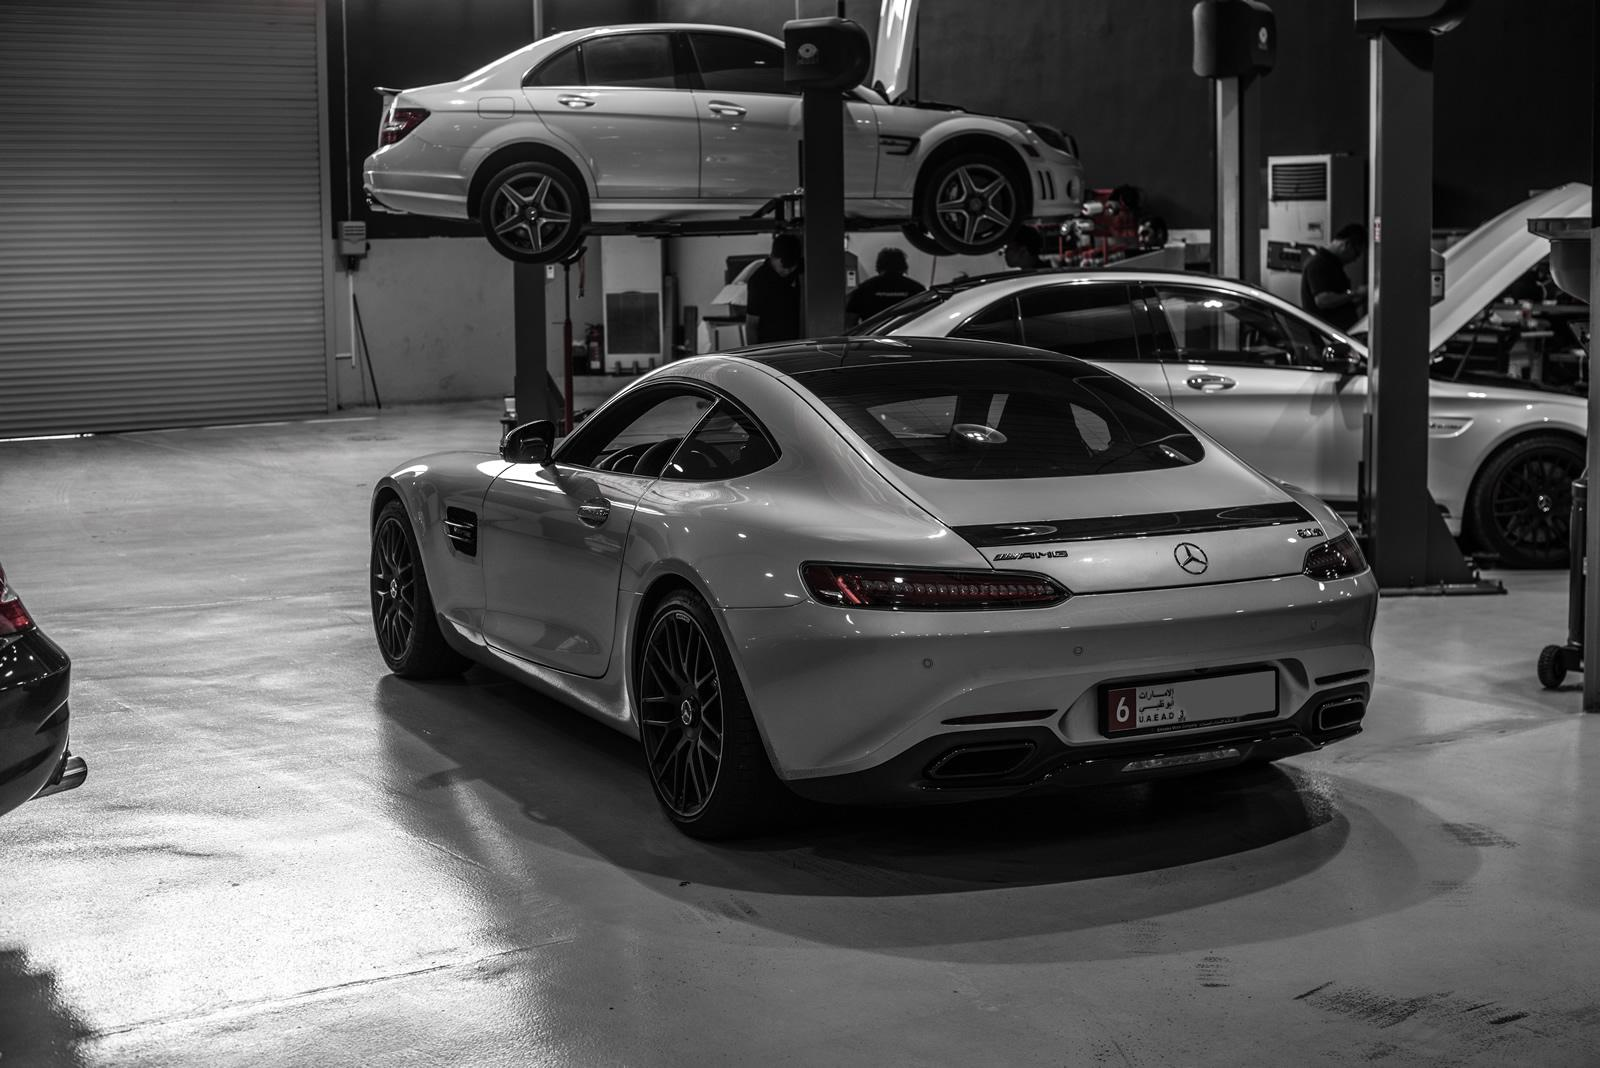 Mercedes-AMG GT and C63 Gain 100 HP from PP-Performance